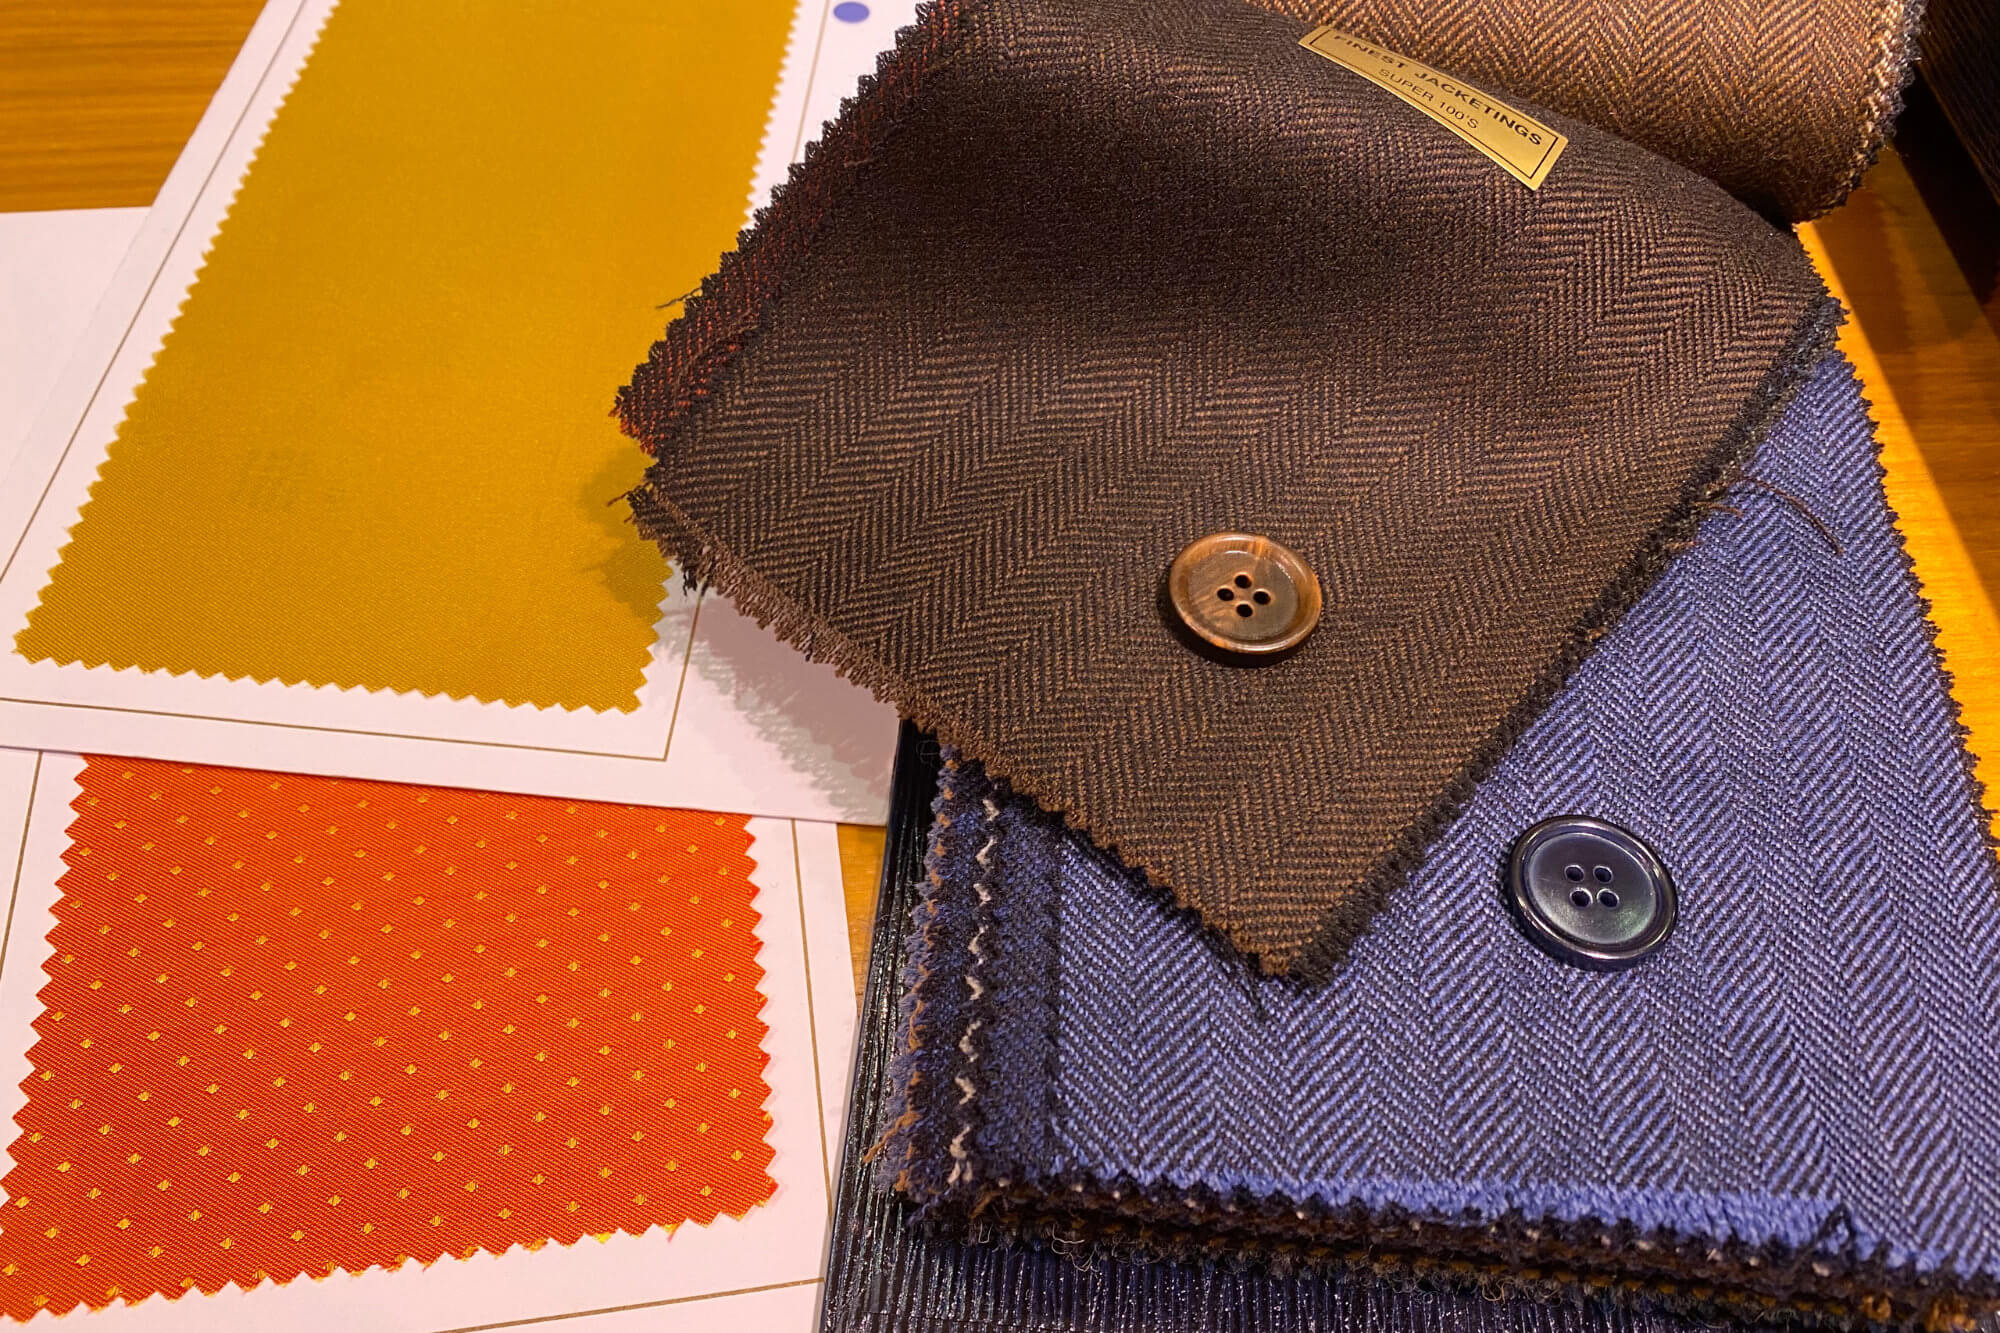 Browsing Through Luxurious Fabrics For Made-To-Measure Wedding Suits At Scabal On Savile Row